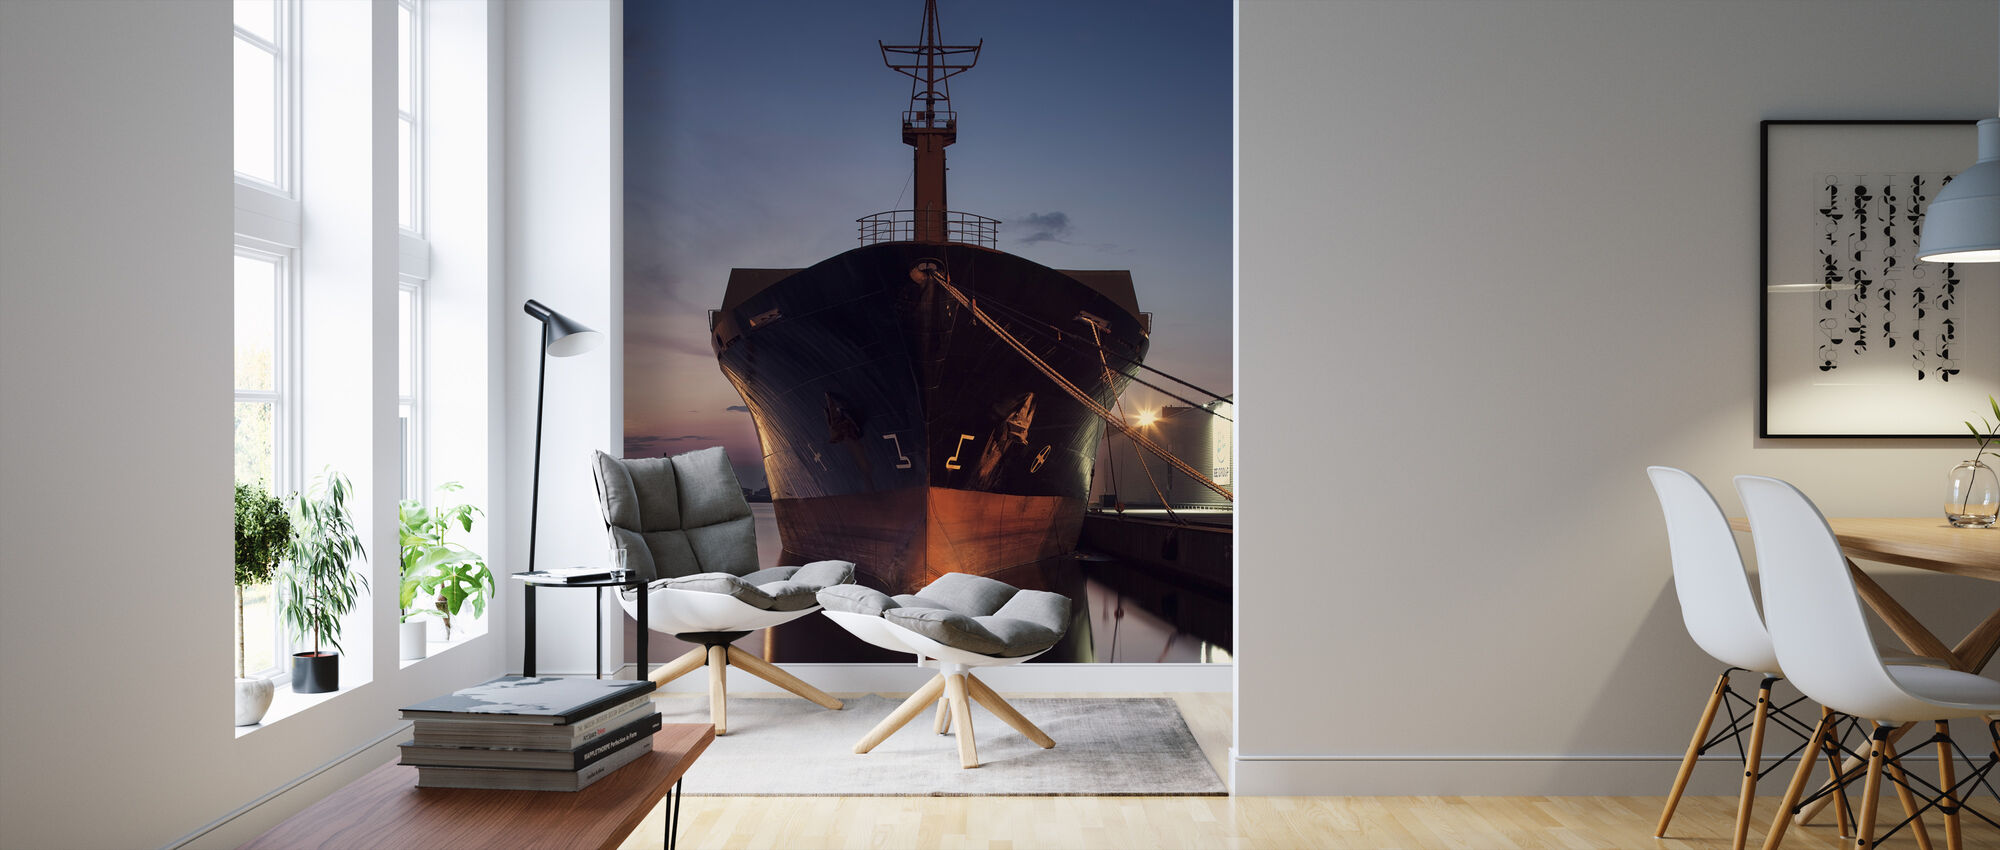 Ship in Eastern Harbor, Malmö Sweden - Wallpaper - Living Room